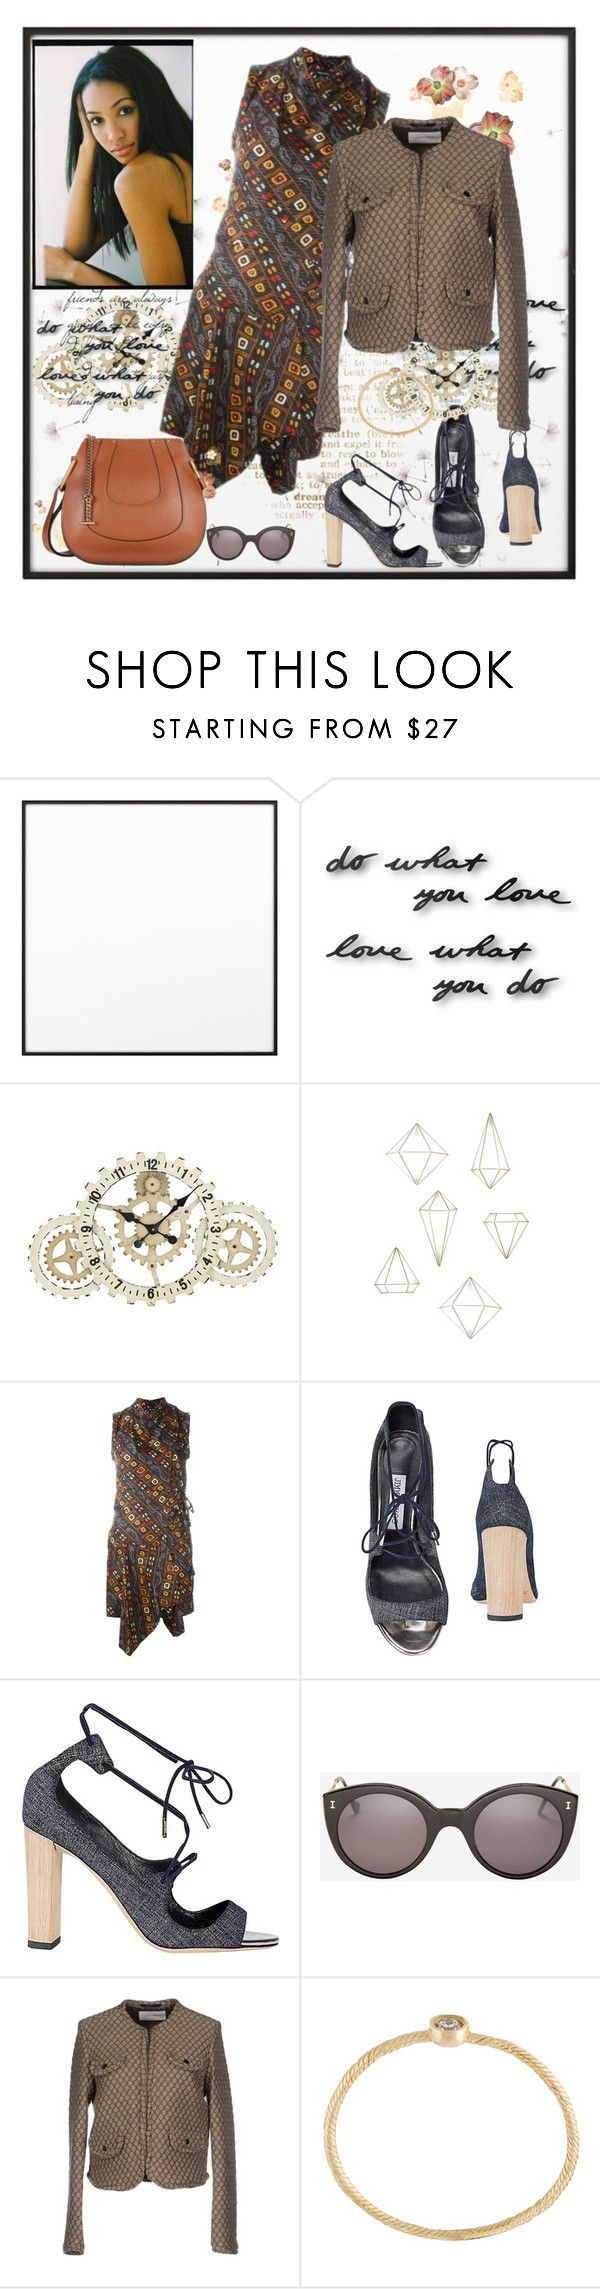 """""""Do What You Love"""" by diane-fritz-sager ❤ liked on Polyvore featuring By Lassen, WALL, Dot & Bo, Isabel Marant, Jimmy Choo, Illesteva, Mauro Grifoni, Wouters & Hendrix Gold and Chloé"""